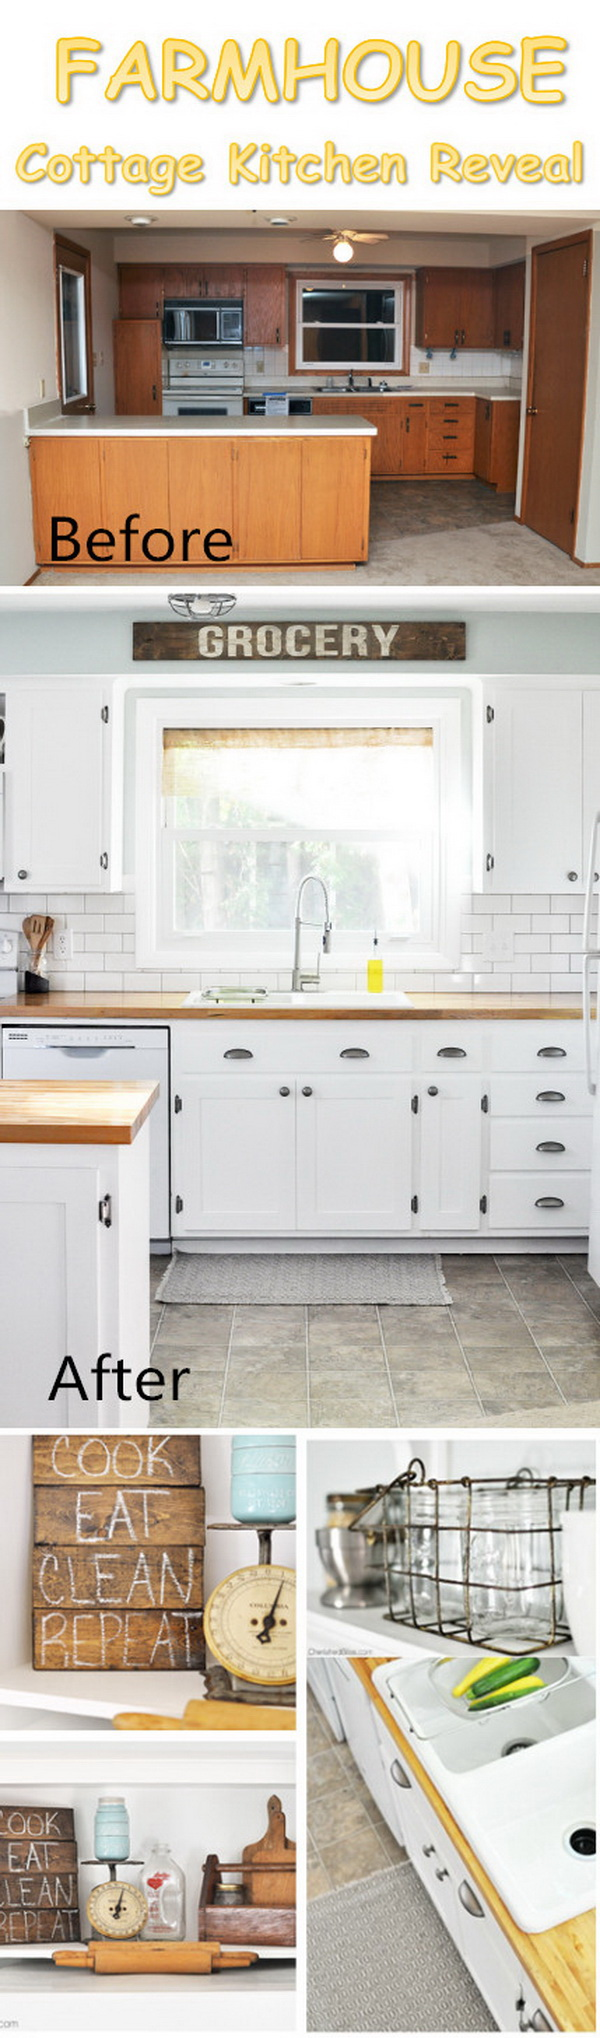 Farmhouse Cottage Kitchen Reveal.